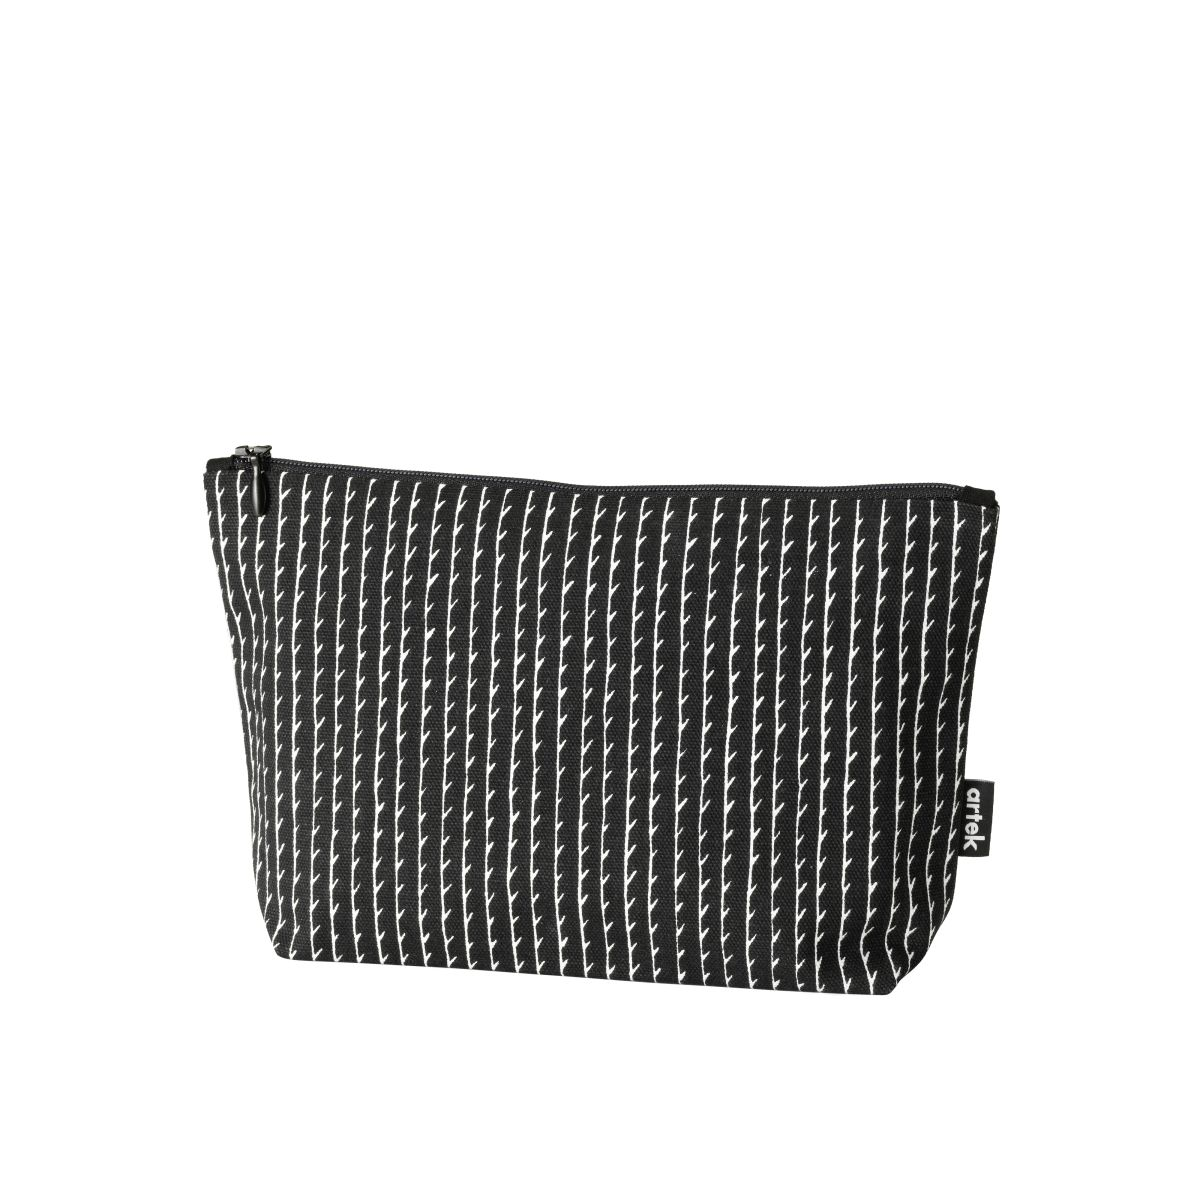 Rivi-Pouch-Black-_-White-Small_F_Web-2411320